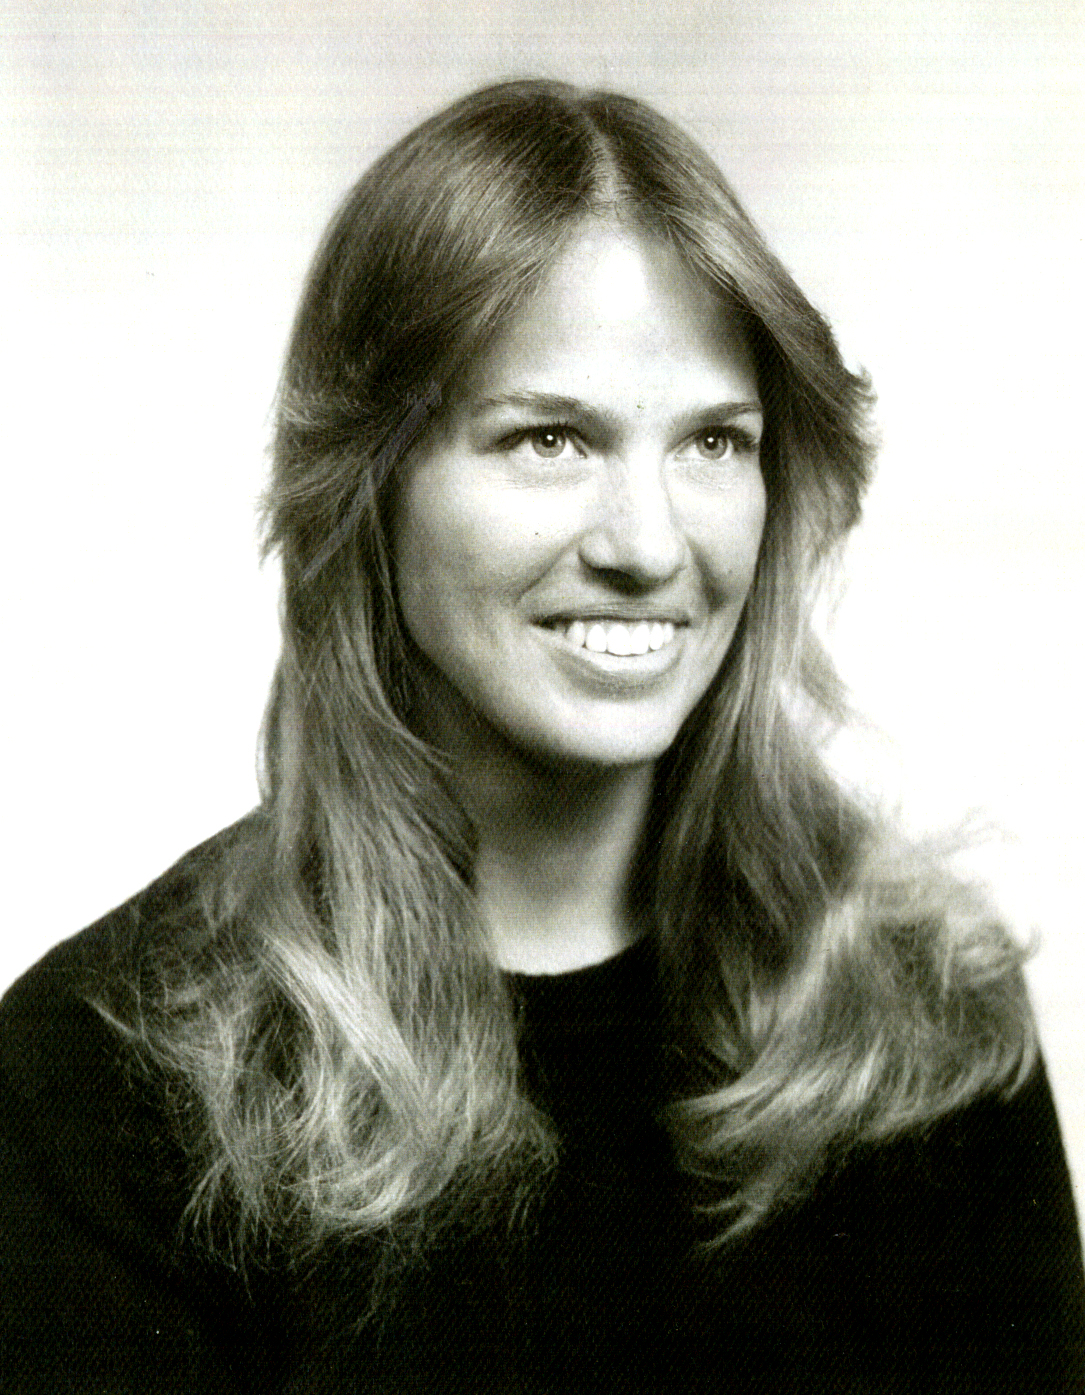 Cold case photo of Donna Kuzmaak